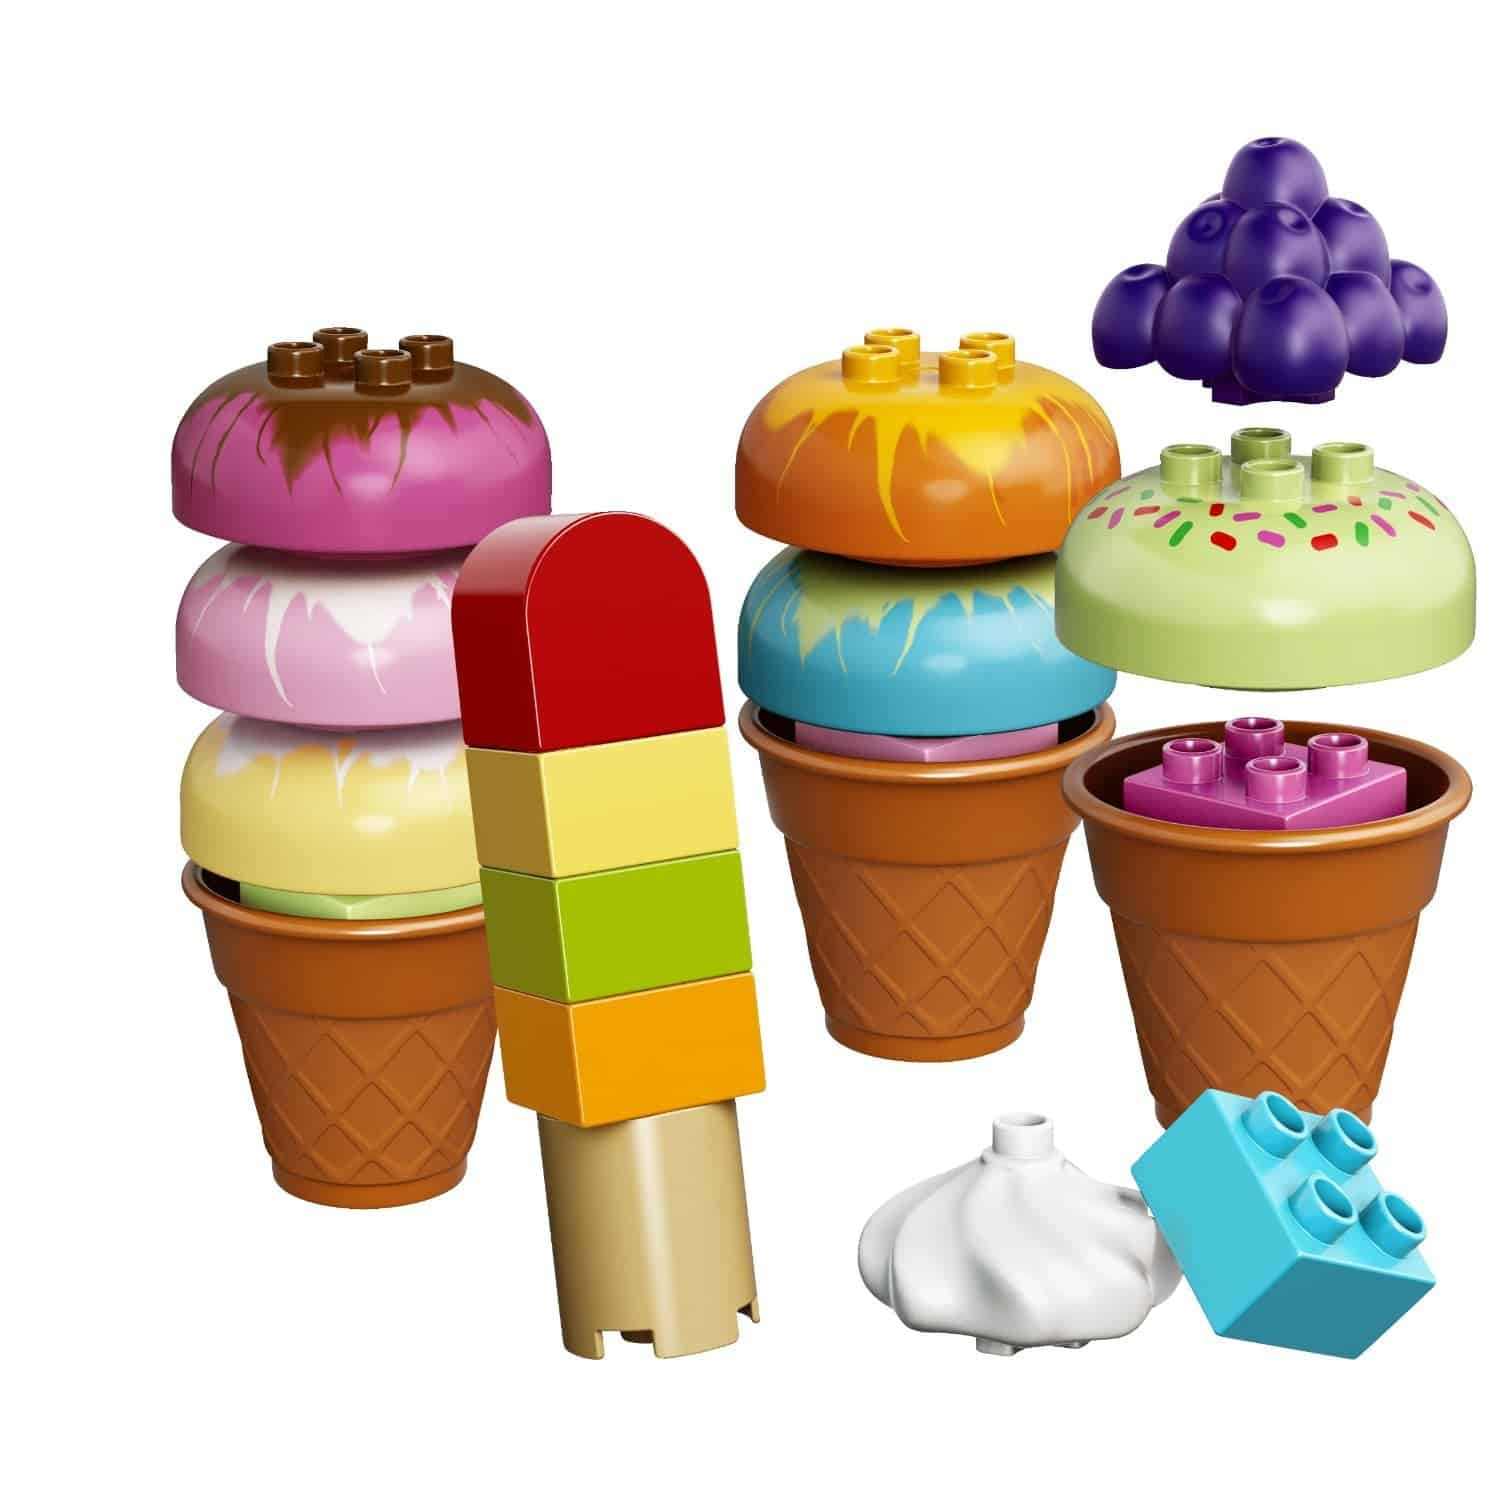 Lego Gift Ideas by Age - Toddler to Twelve Years: Creative Ice Cream | www.thepinningmama.com